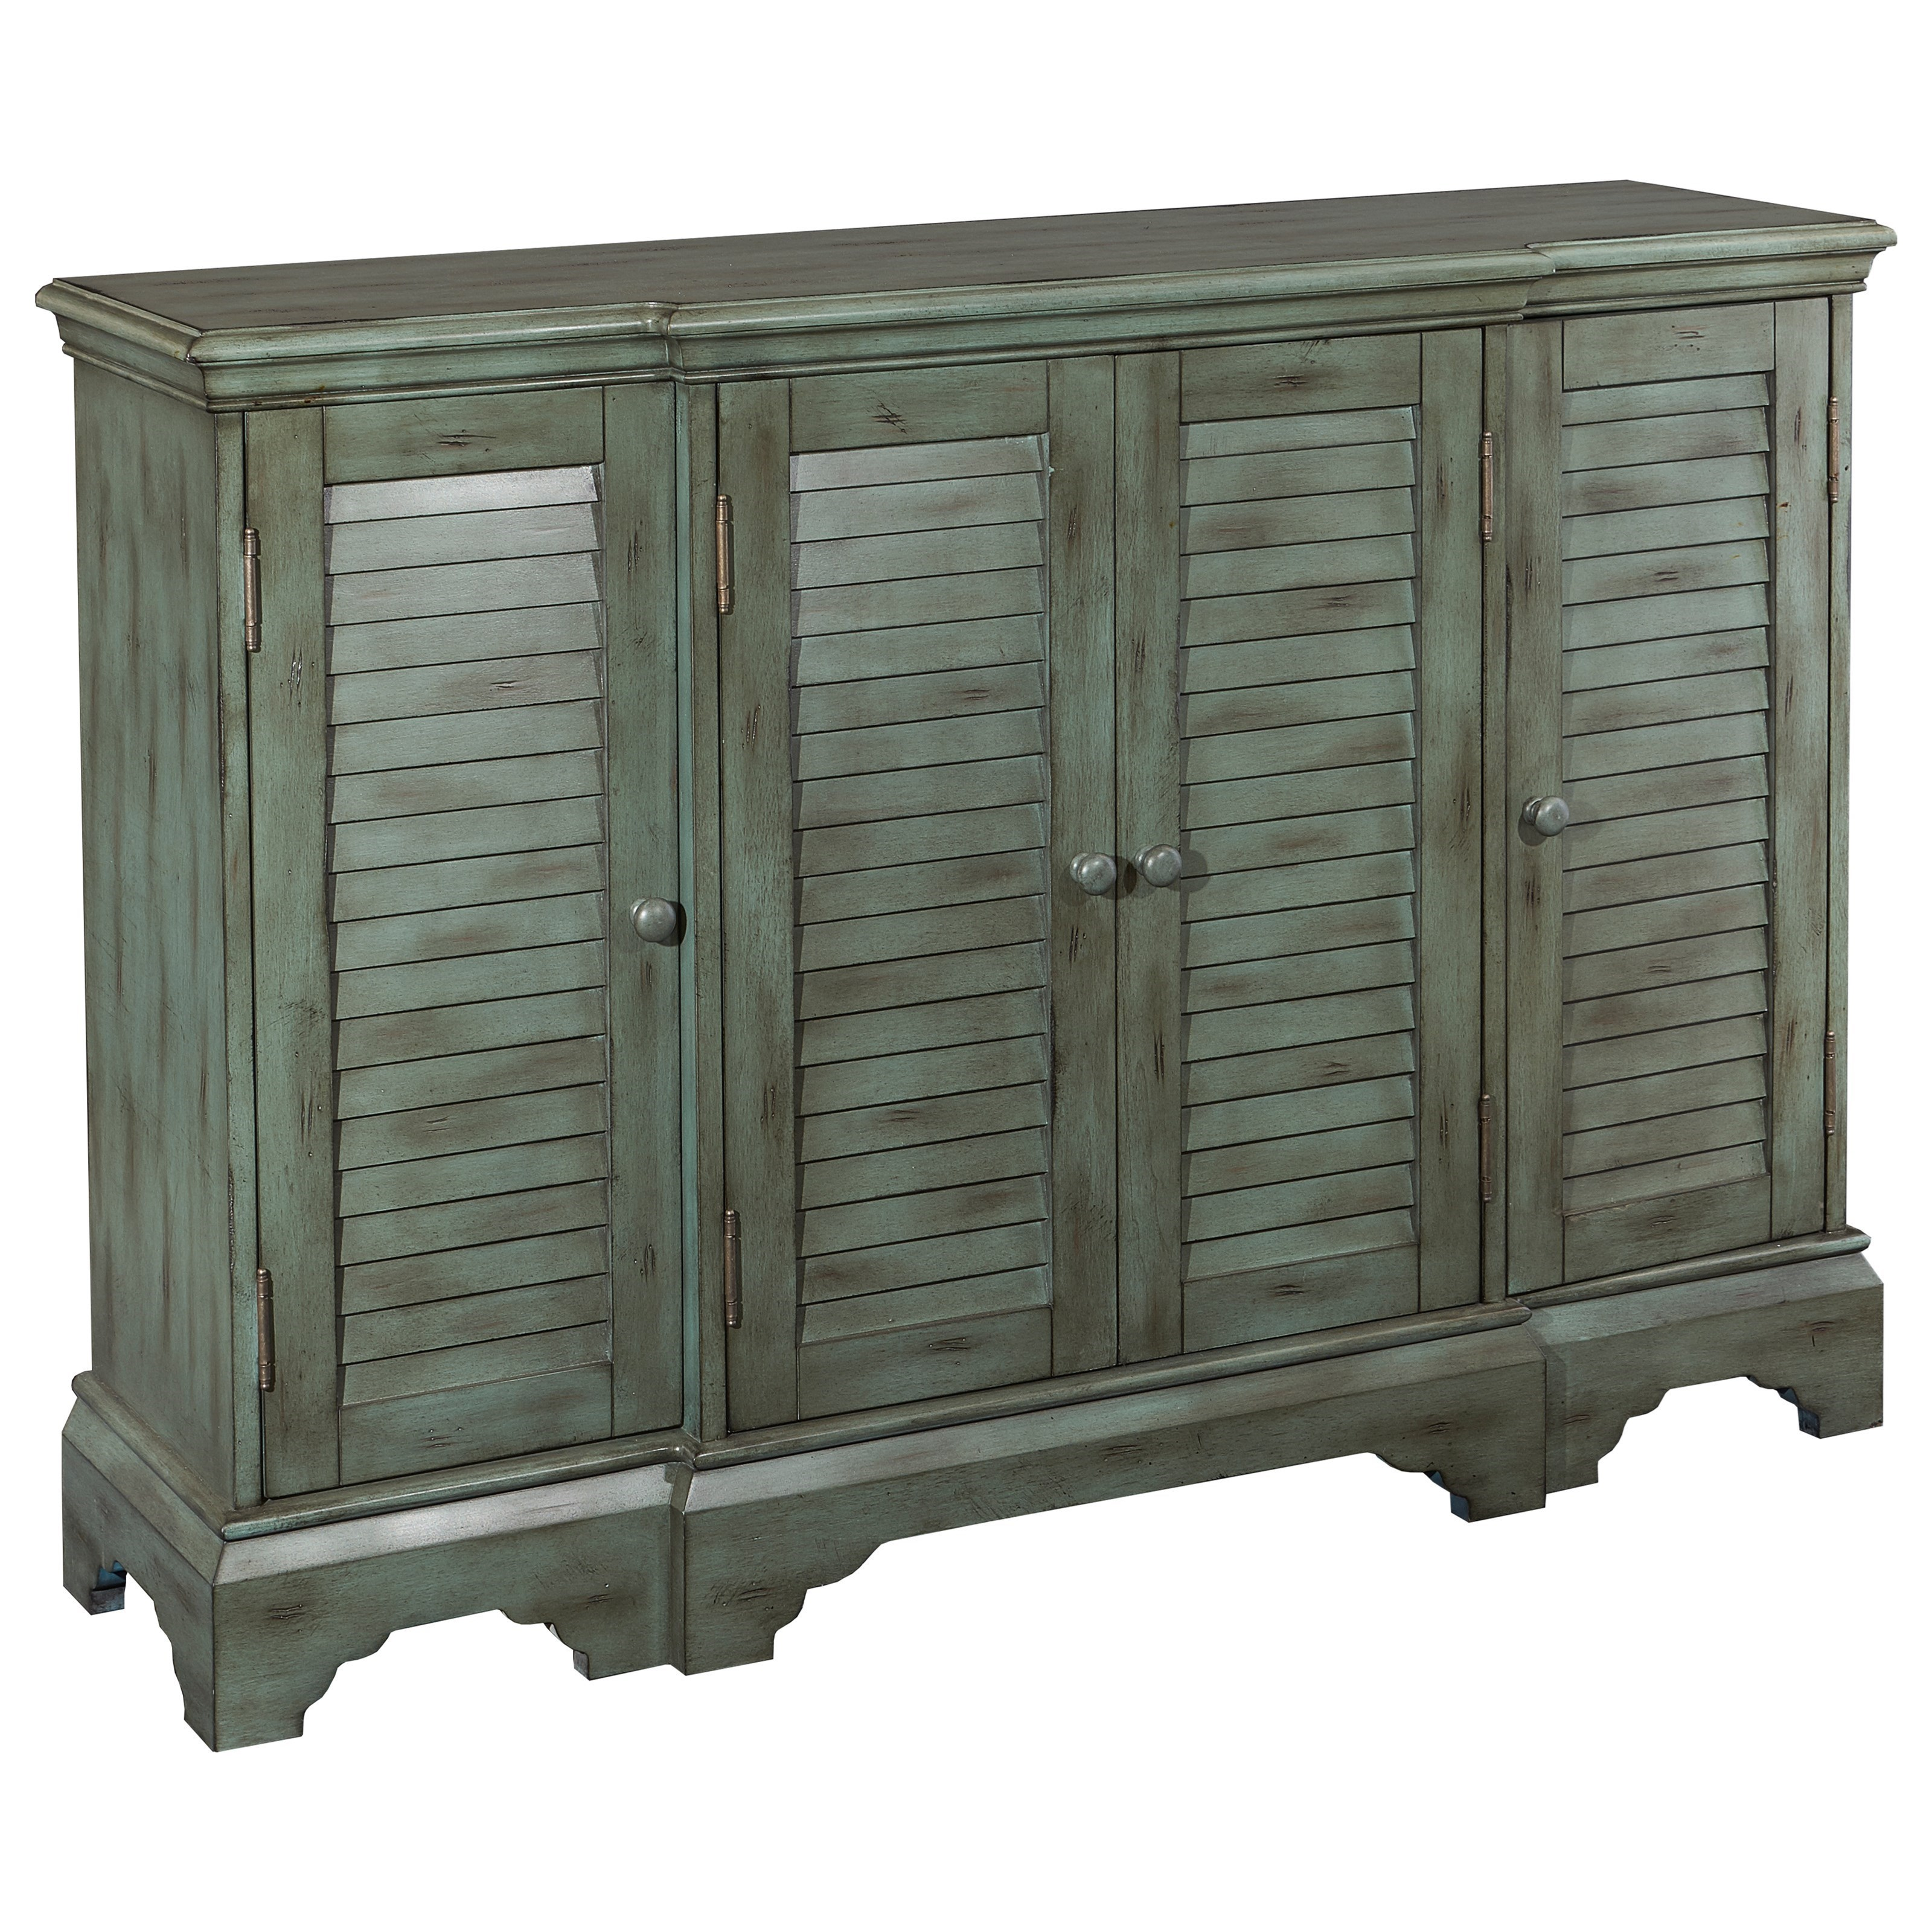 Powell Accent Furniture Savannah Shutter Console - Item Number: 16A8262T